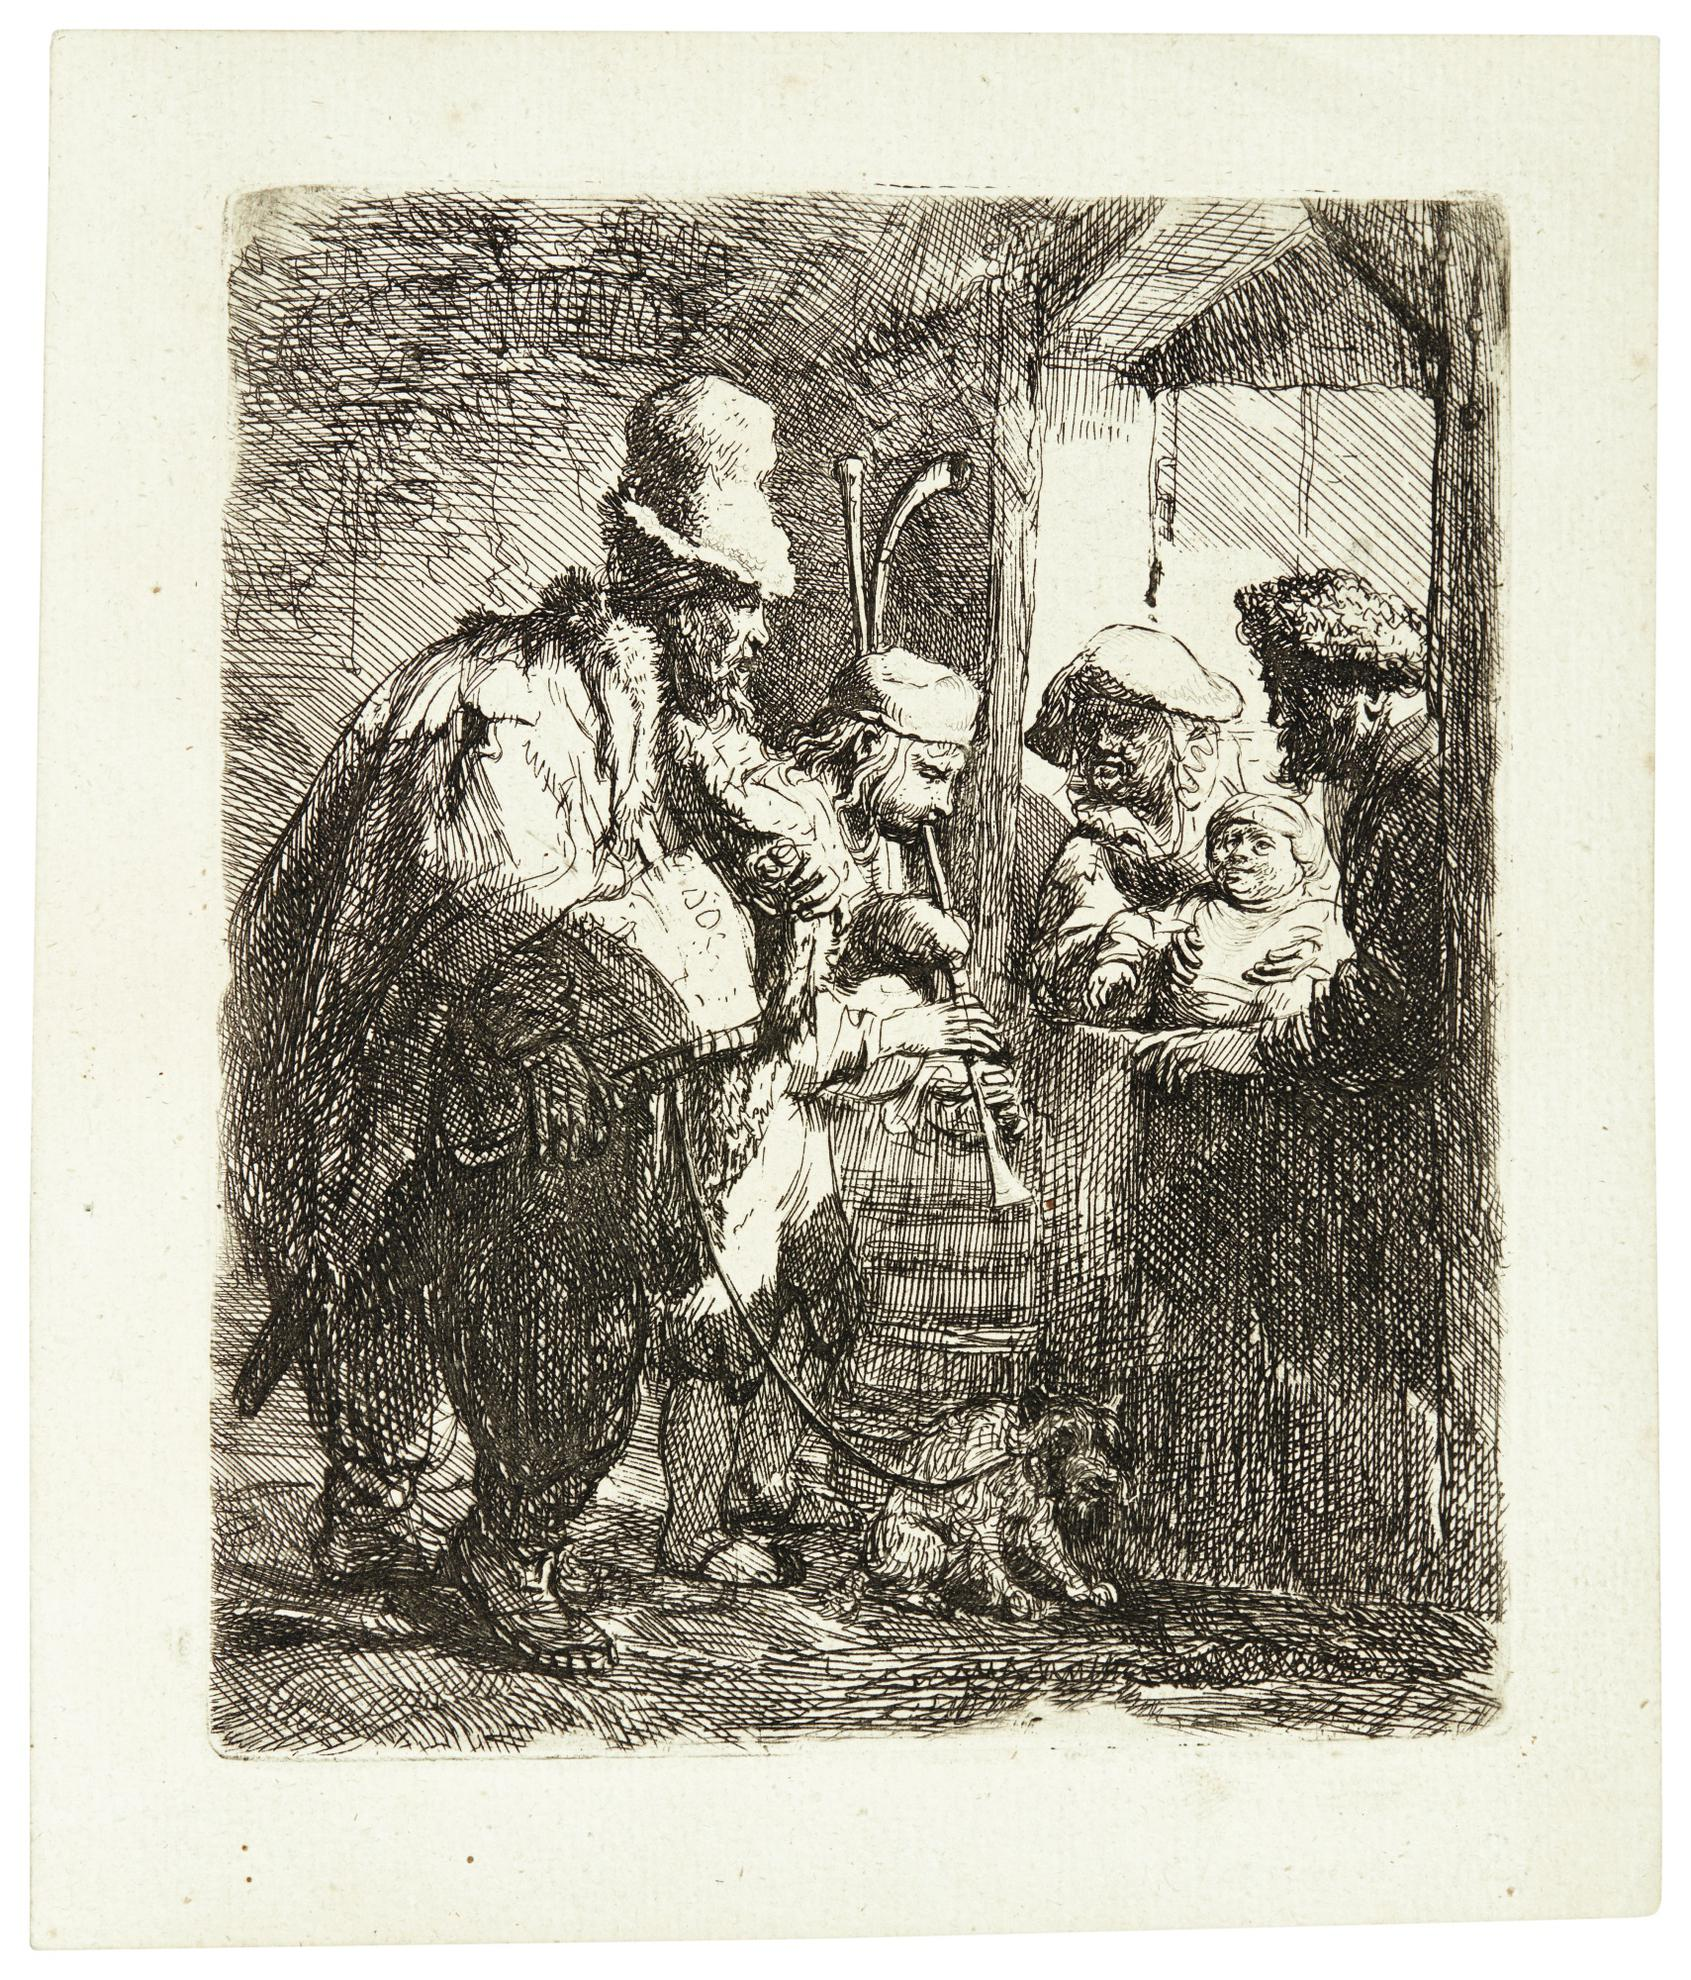 Rembrandt van Rijn-The Strolling Musicians (B., Holl. 119; New Holl. 141; H. 142)-1635